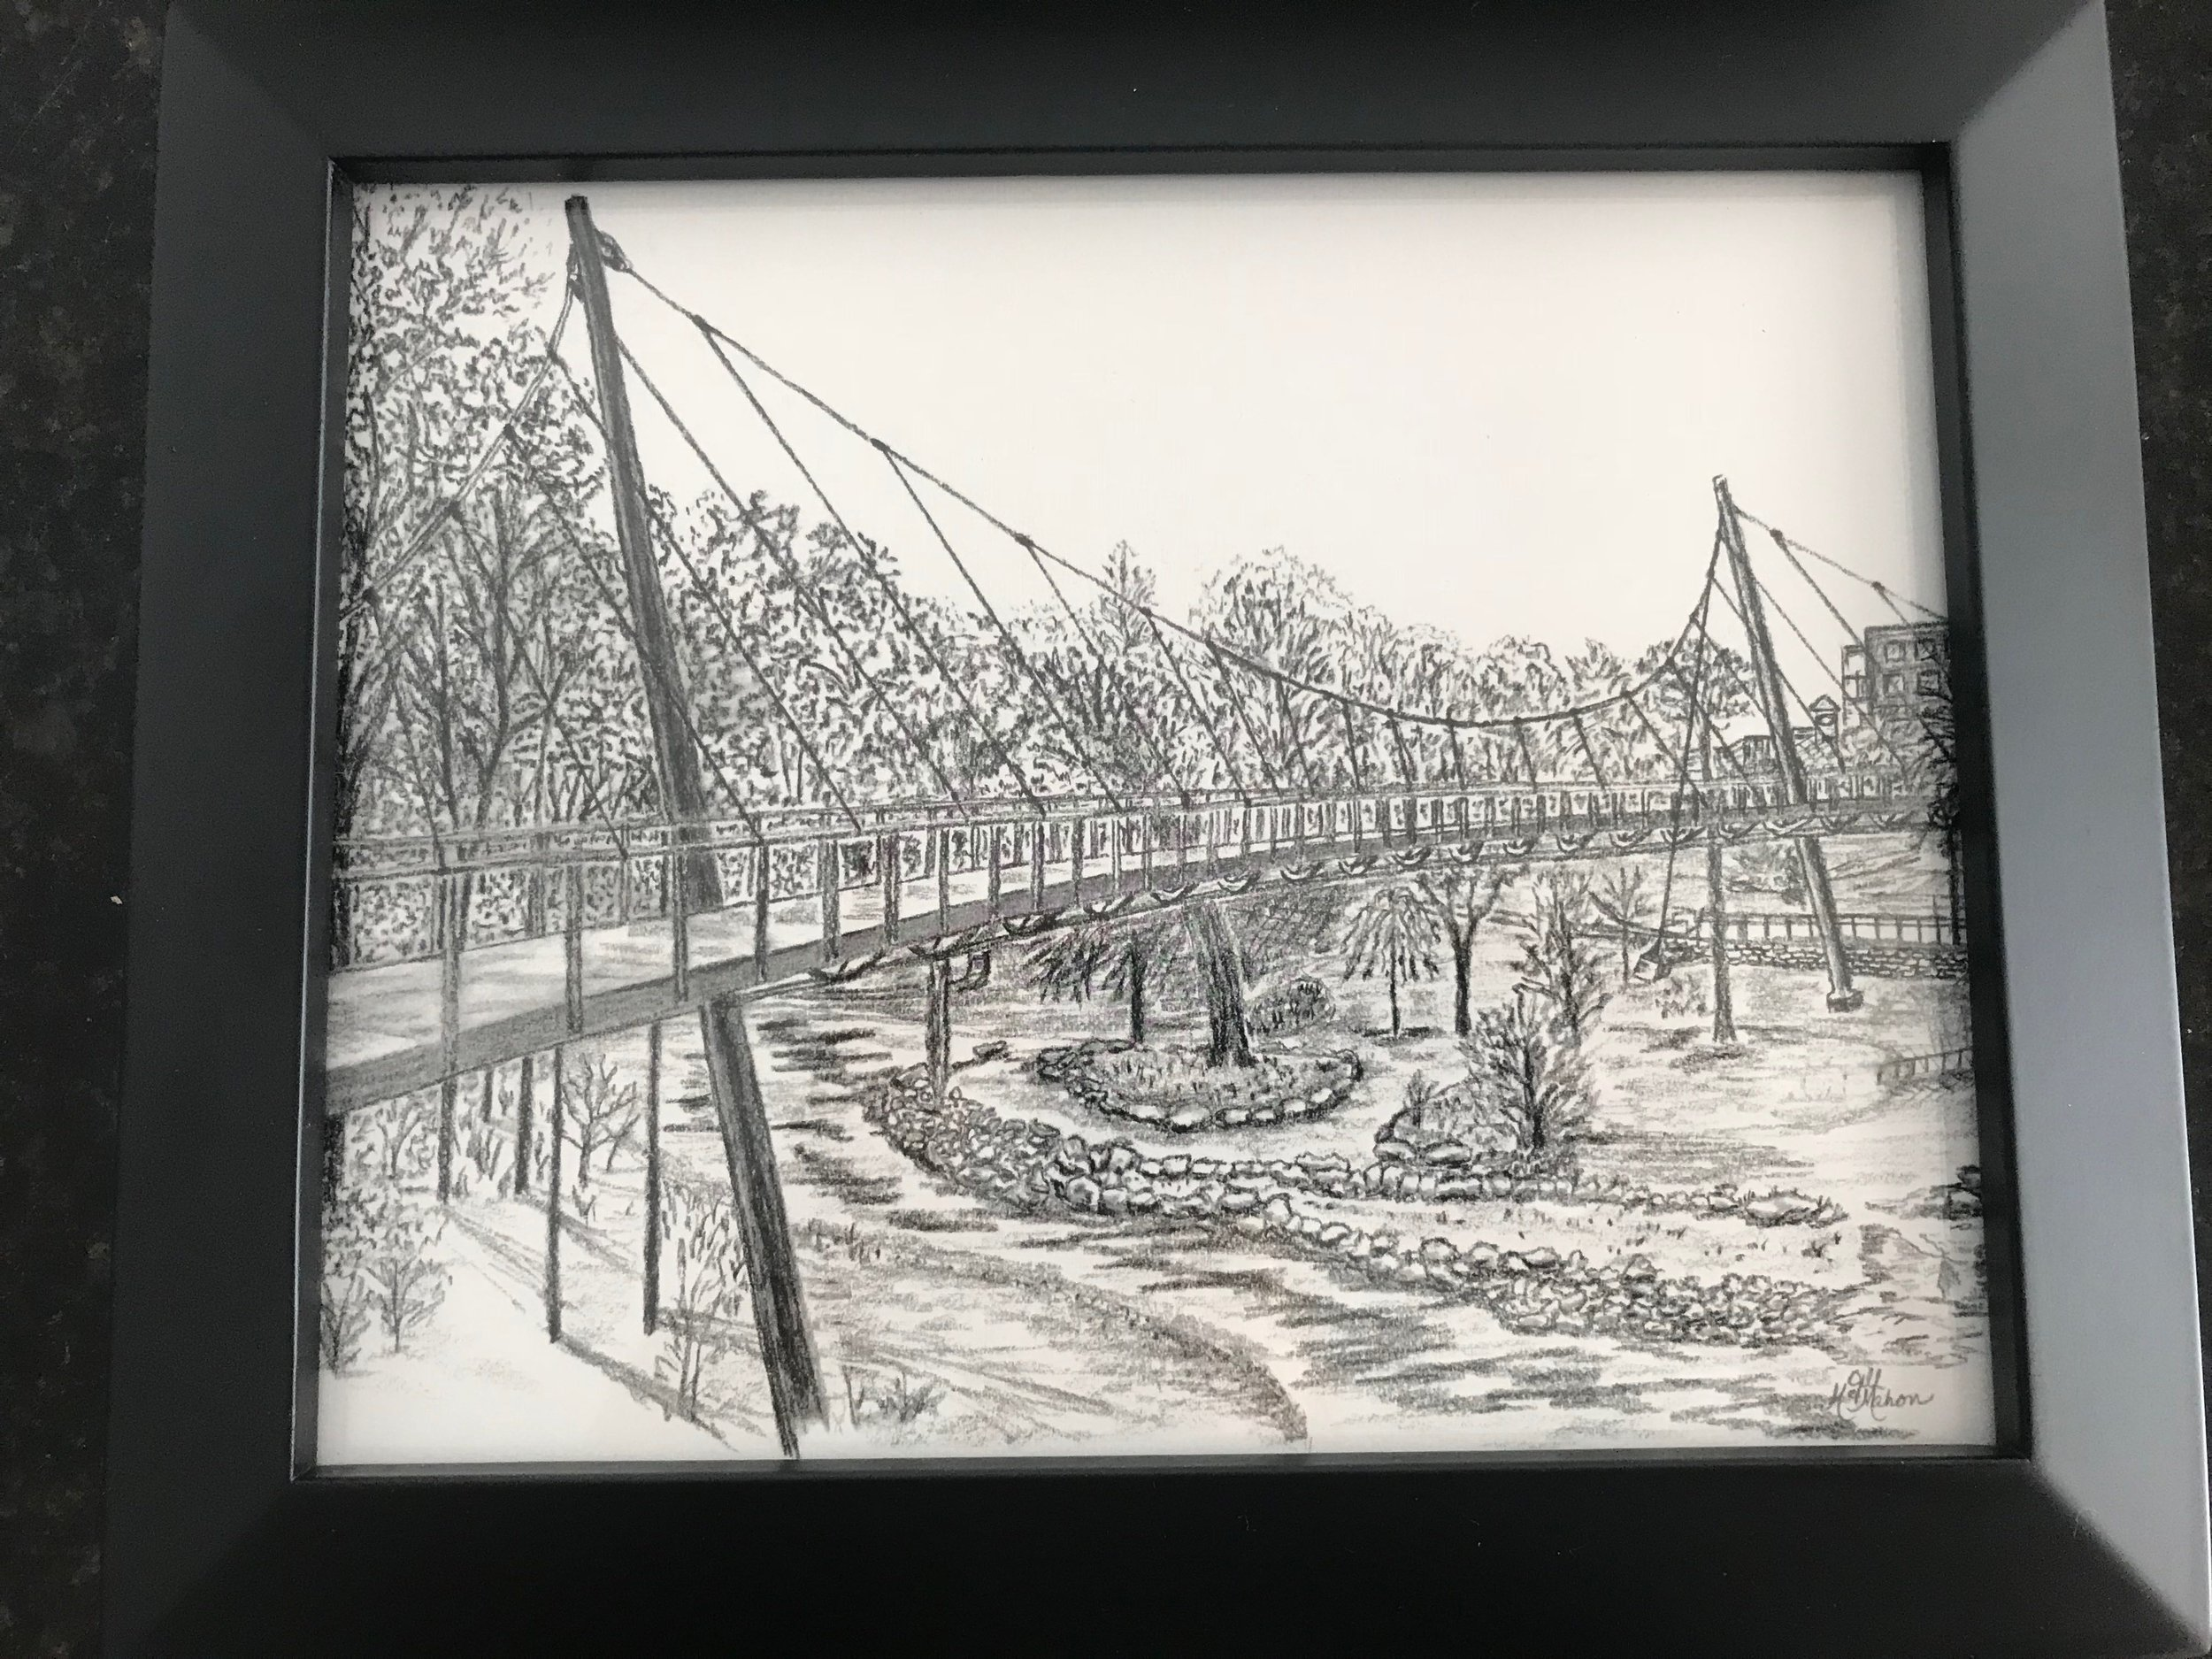 LIBERTY BRIDGE CHARCOAL PRINT   Decorate your home with this framed 8x10 print of a charcoal drawing of the iconic Greenville landmark - Liberty Bridge.  DONOR: Jill McMahon VALUE: $60